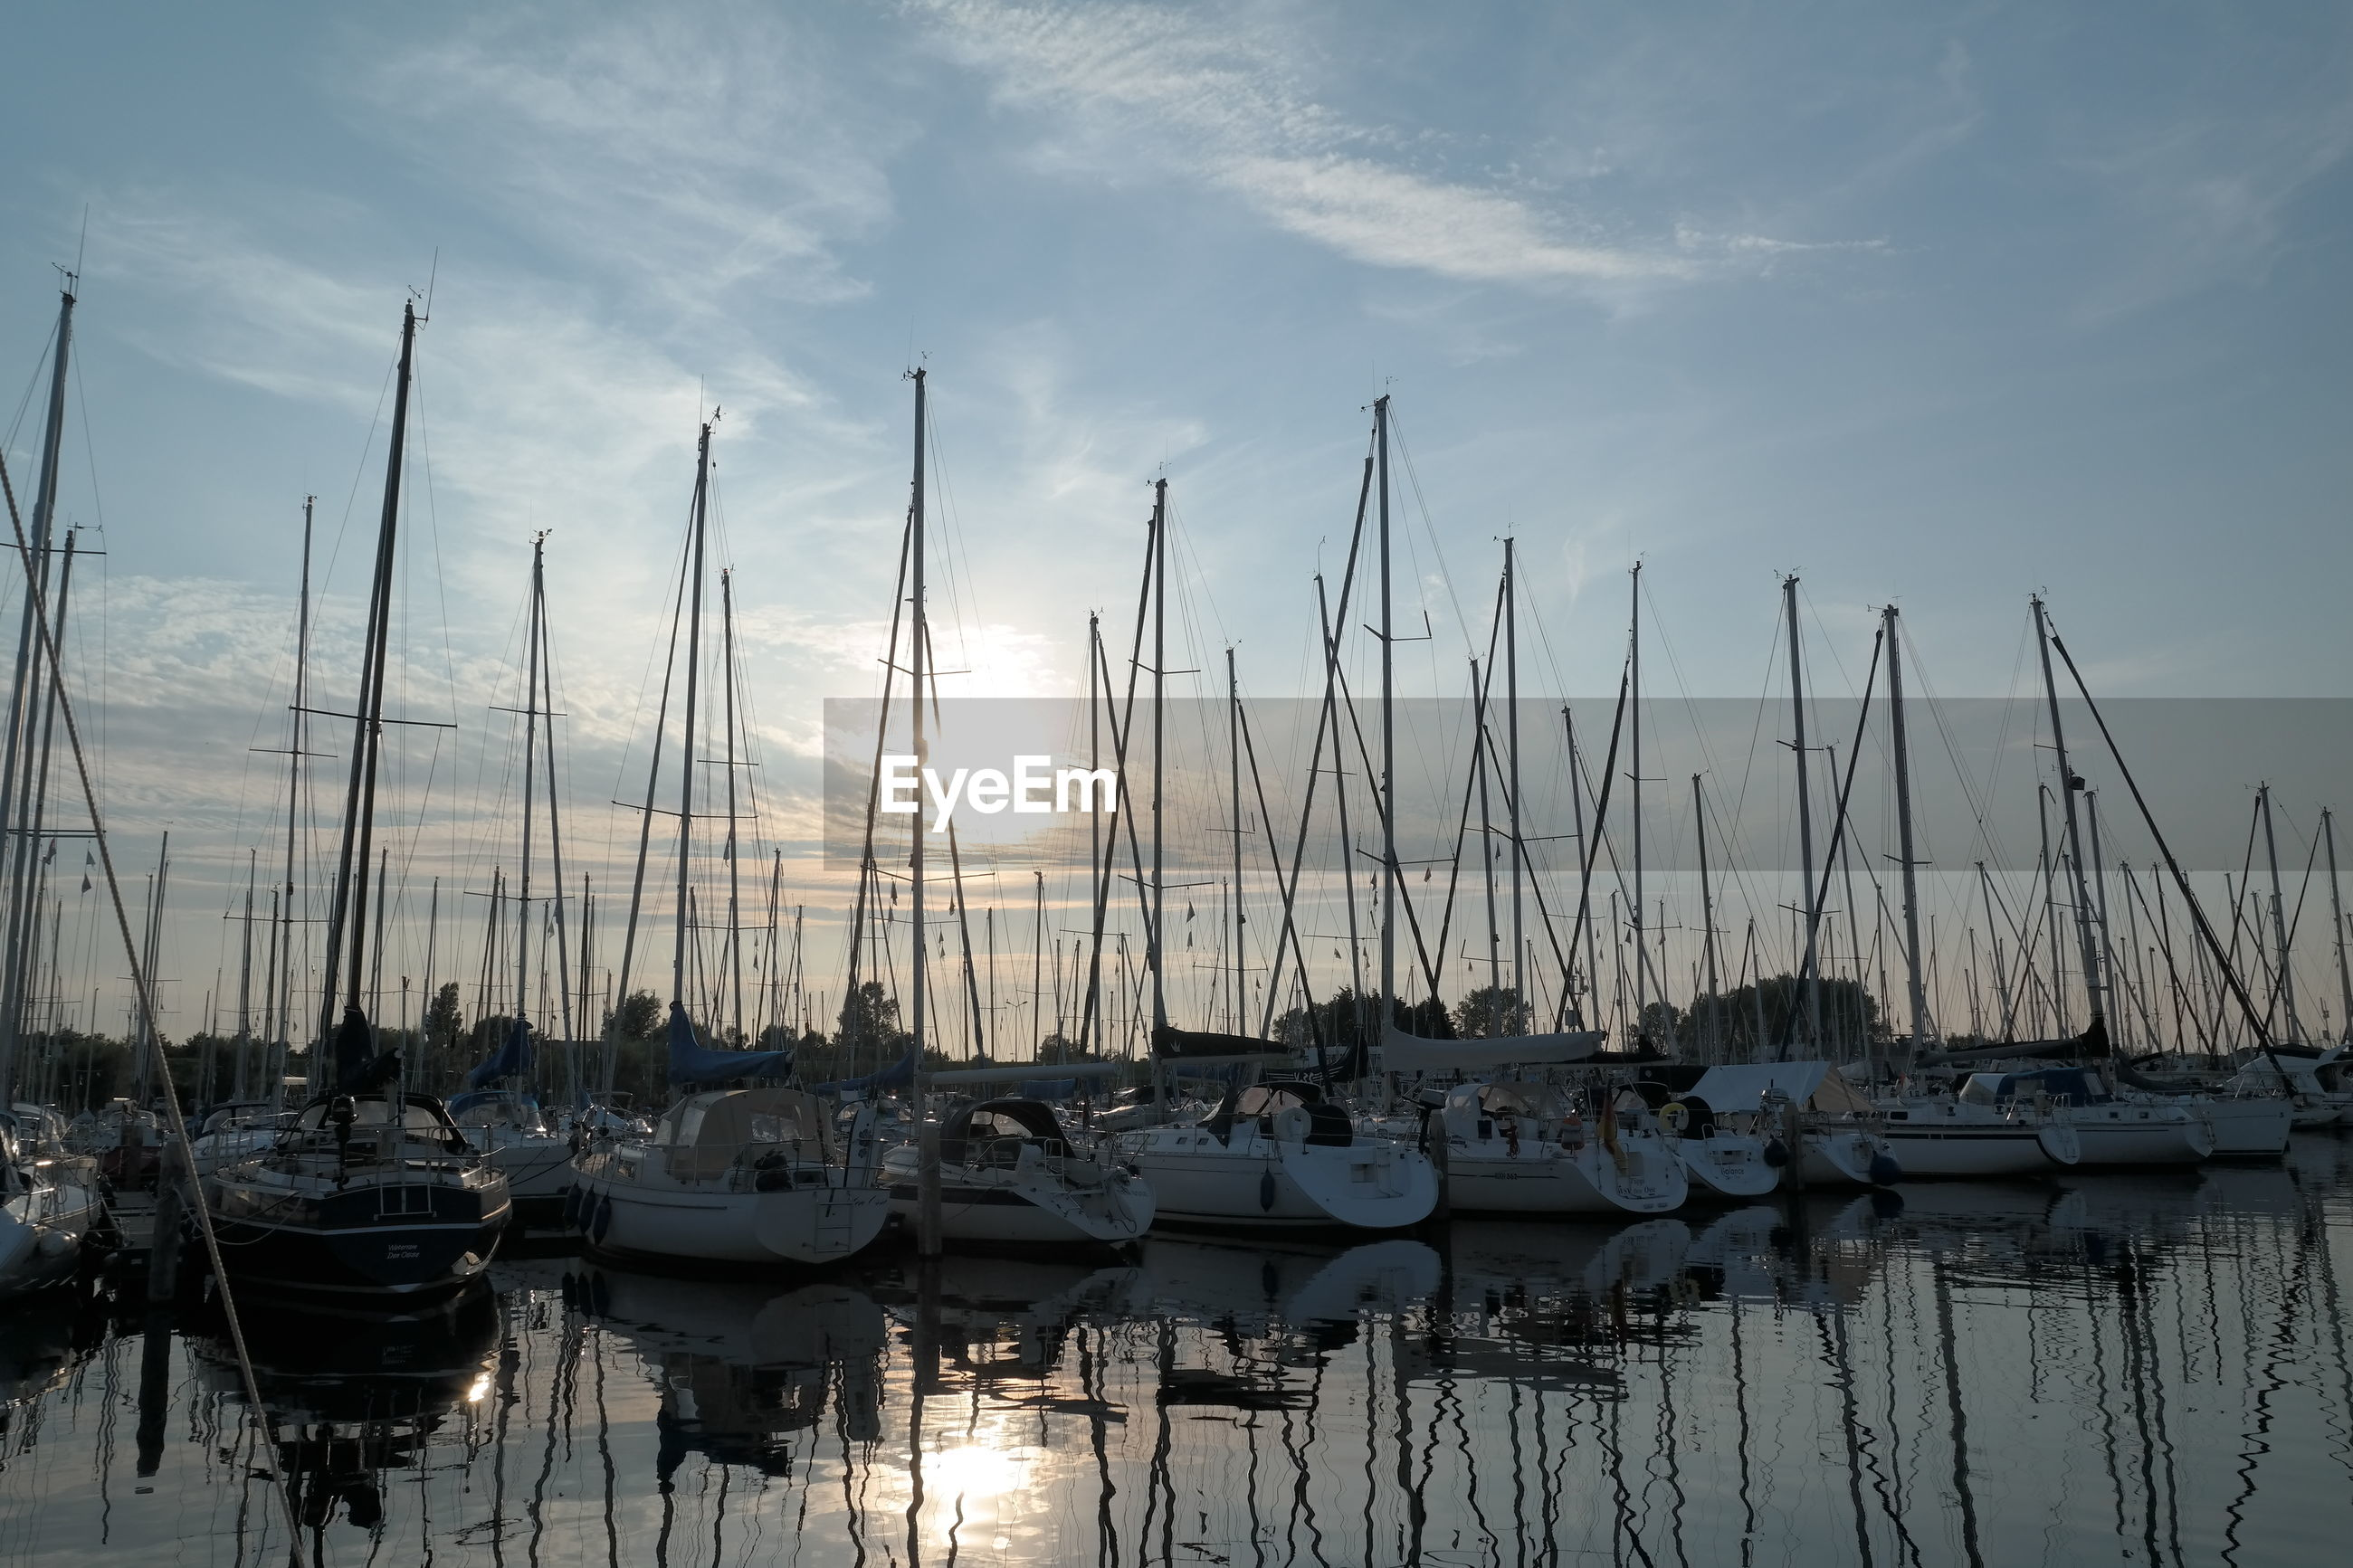 Sailboats moored in harbor at sunset